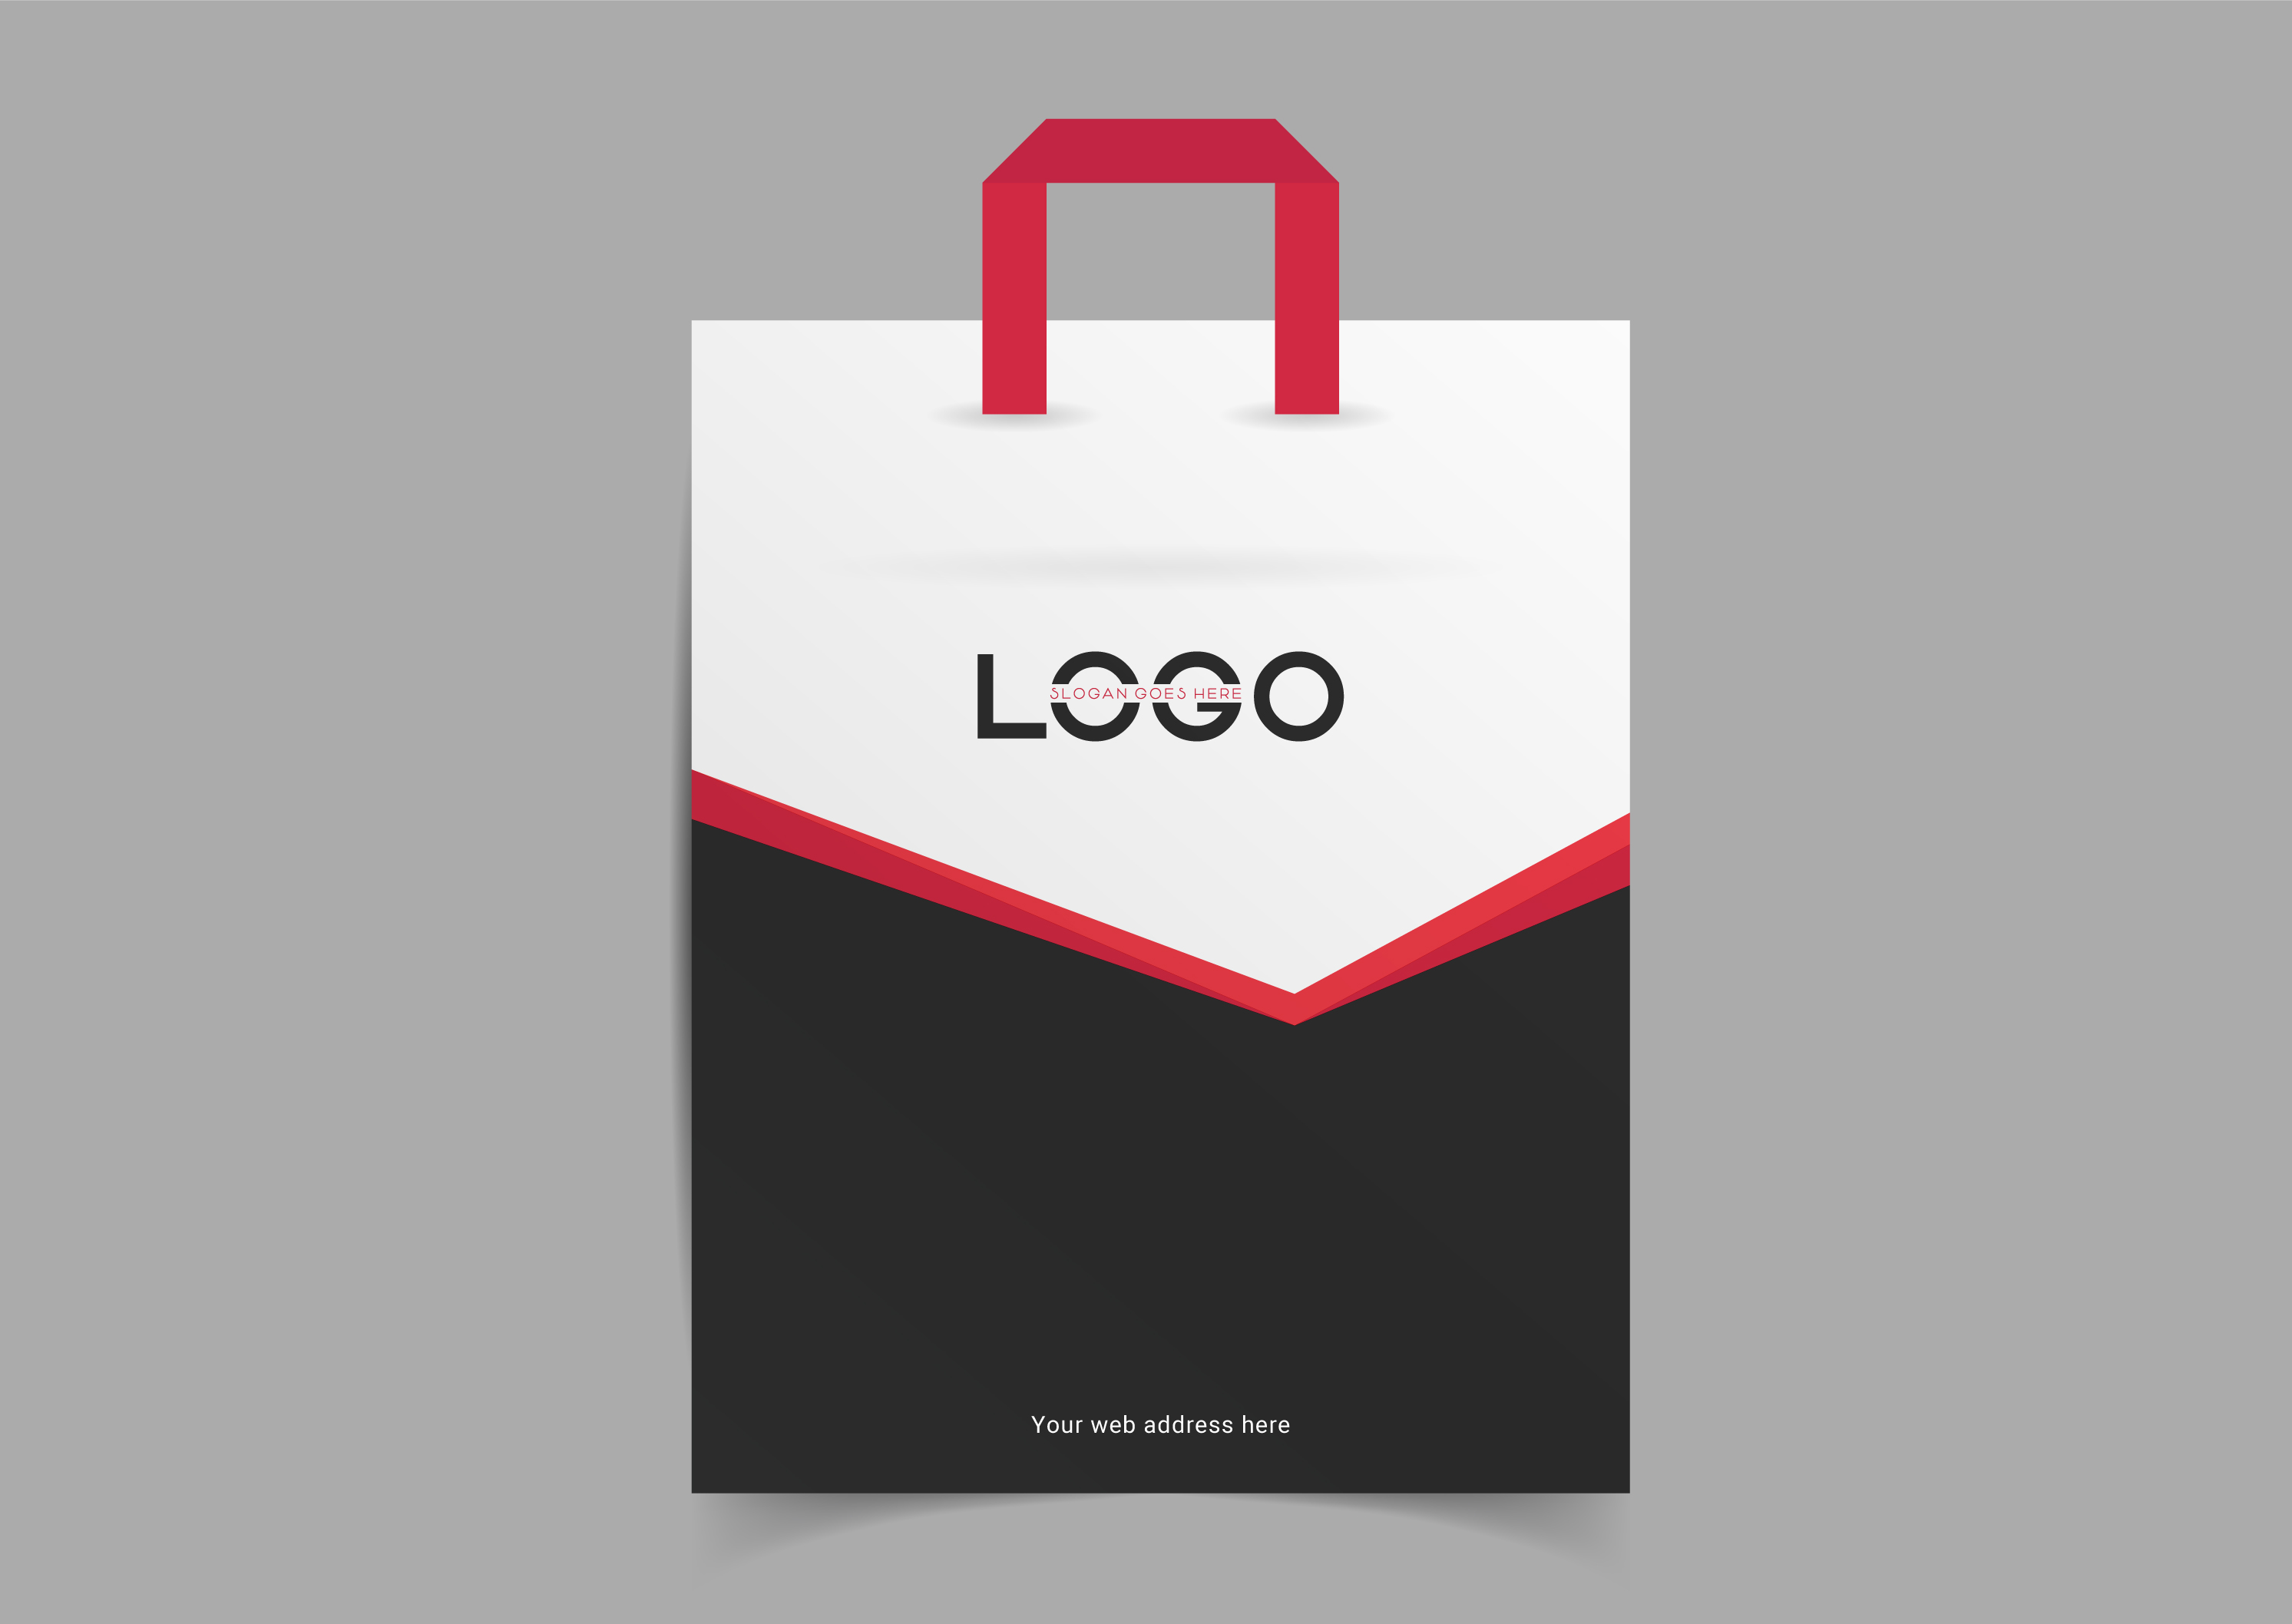 Christmas gift box with a string bow. Mockup Goodie Bag Cdr Free Layered Svg Files Download Mockup Goodie Bag Cdr Free Layered Svg Files Download 220 Bag Mockup Free Vectors We Would Like To Present To Your Attention